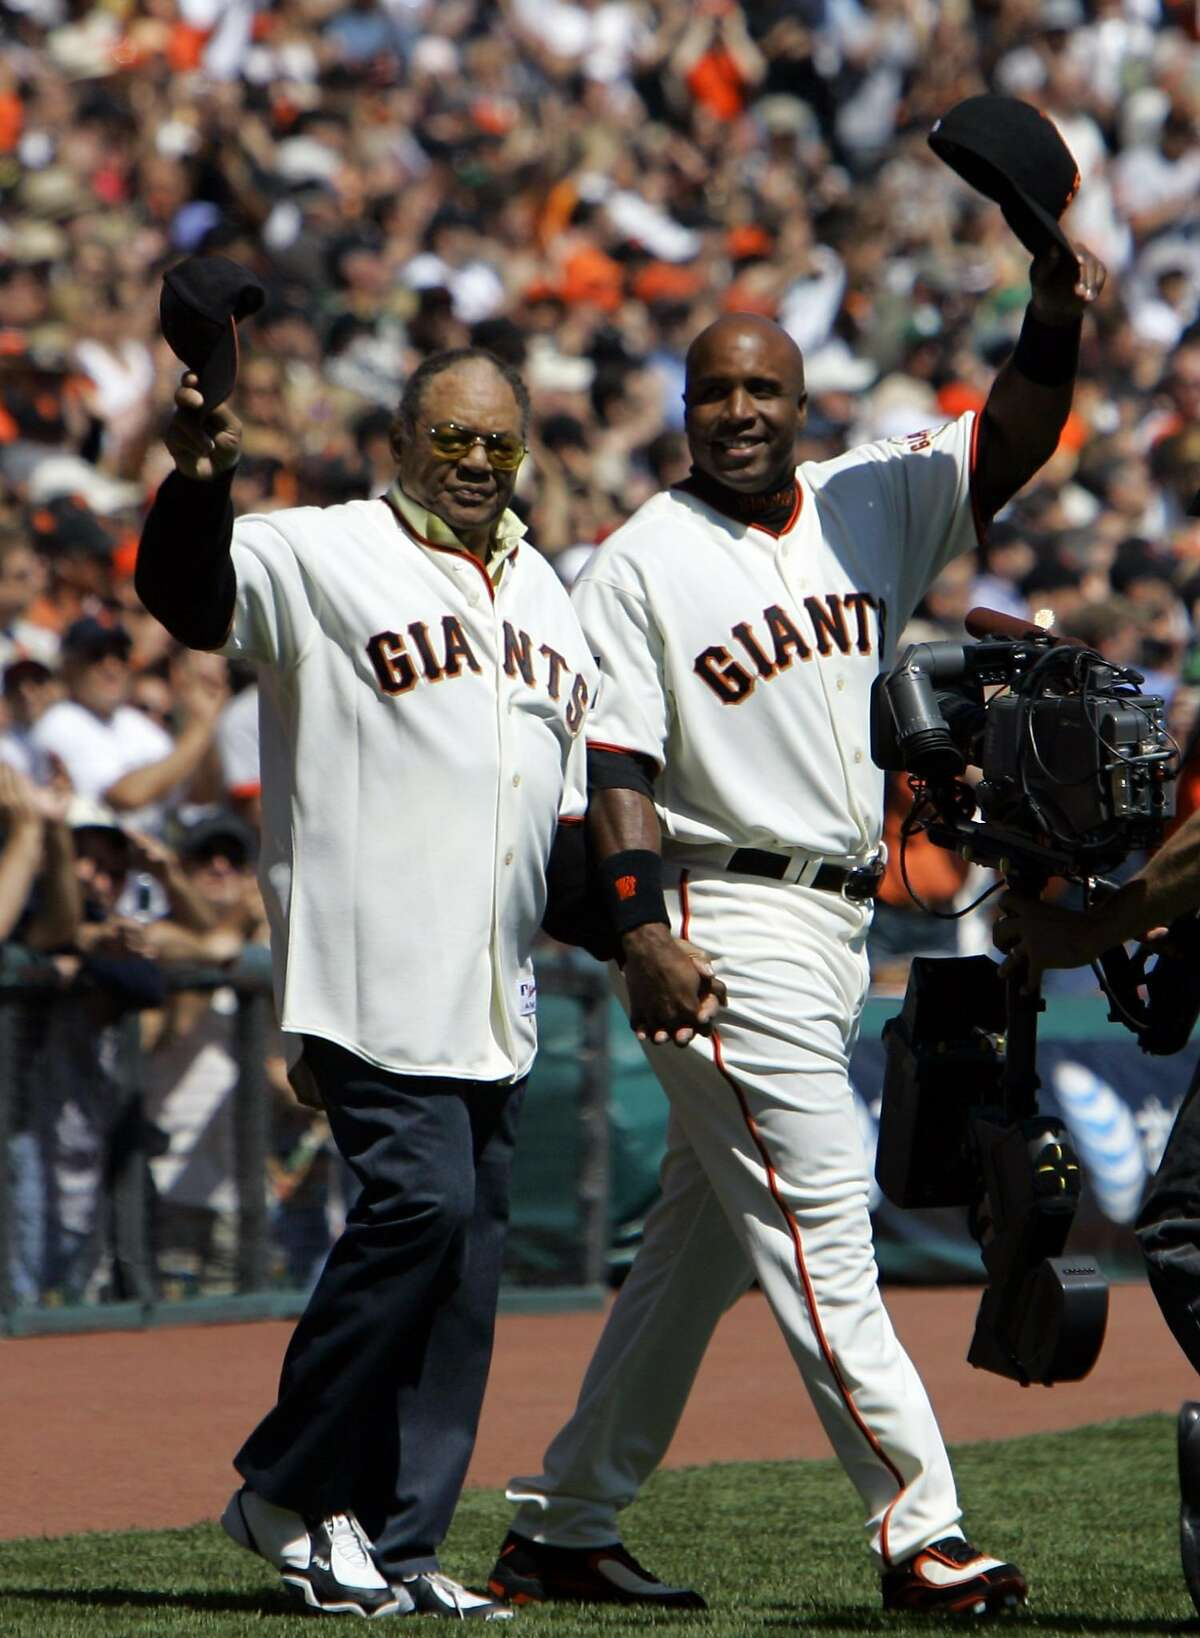 San Francisco Giants' Barry Bonds walks out with his godfather and fellow Giants All-Star Willie Mays, left, on opening day during their baseball game against the San Diego Padres in San Francisco, in this April 3, 2007 file photo. In preparation for this year's All-Star game to be held at AT&T Park, the team honored Giants who have represented the team as an All-Star.